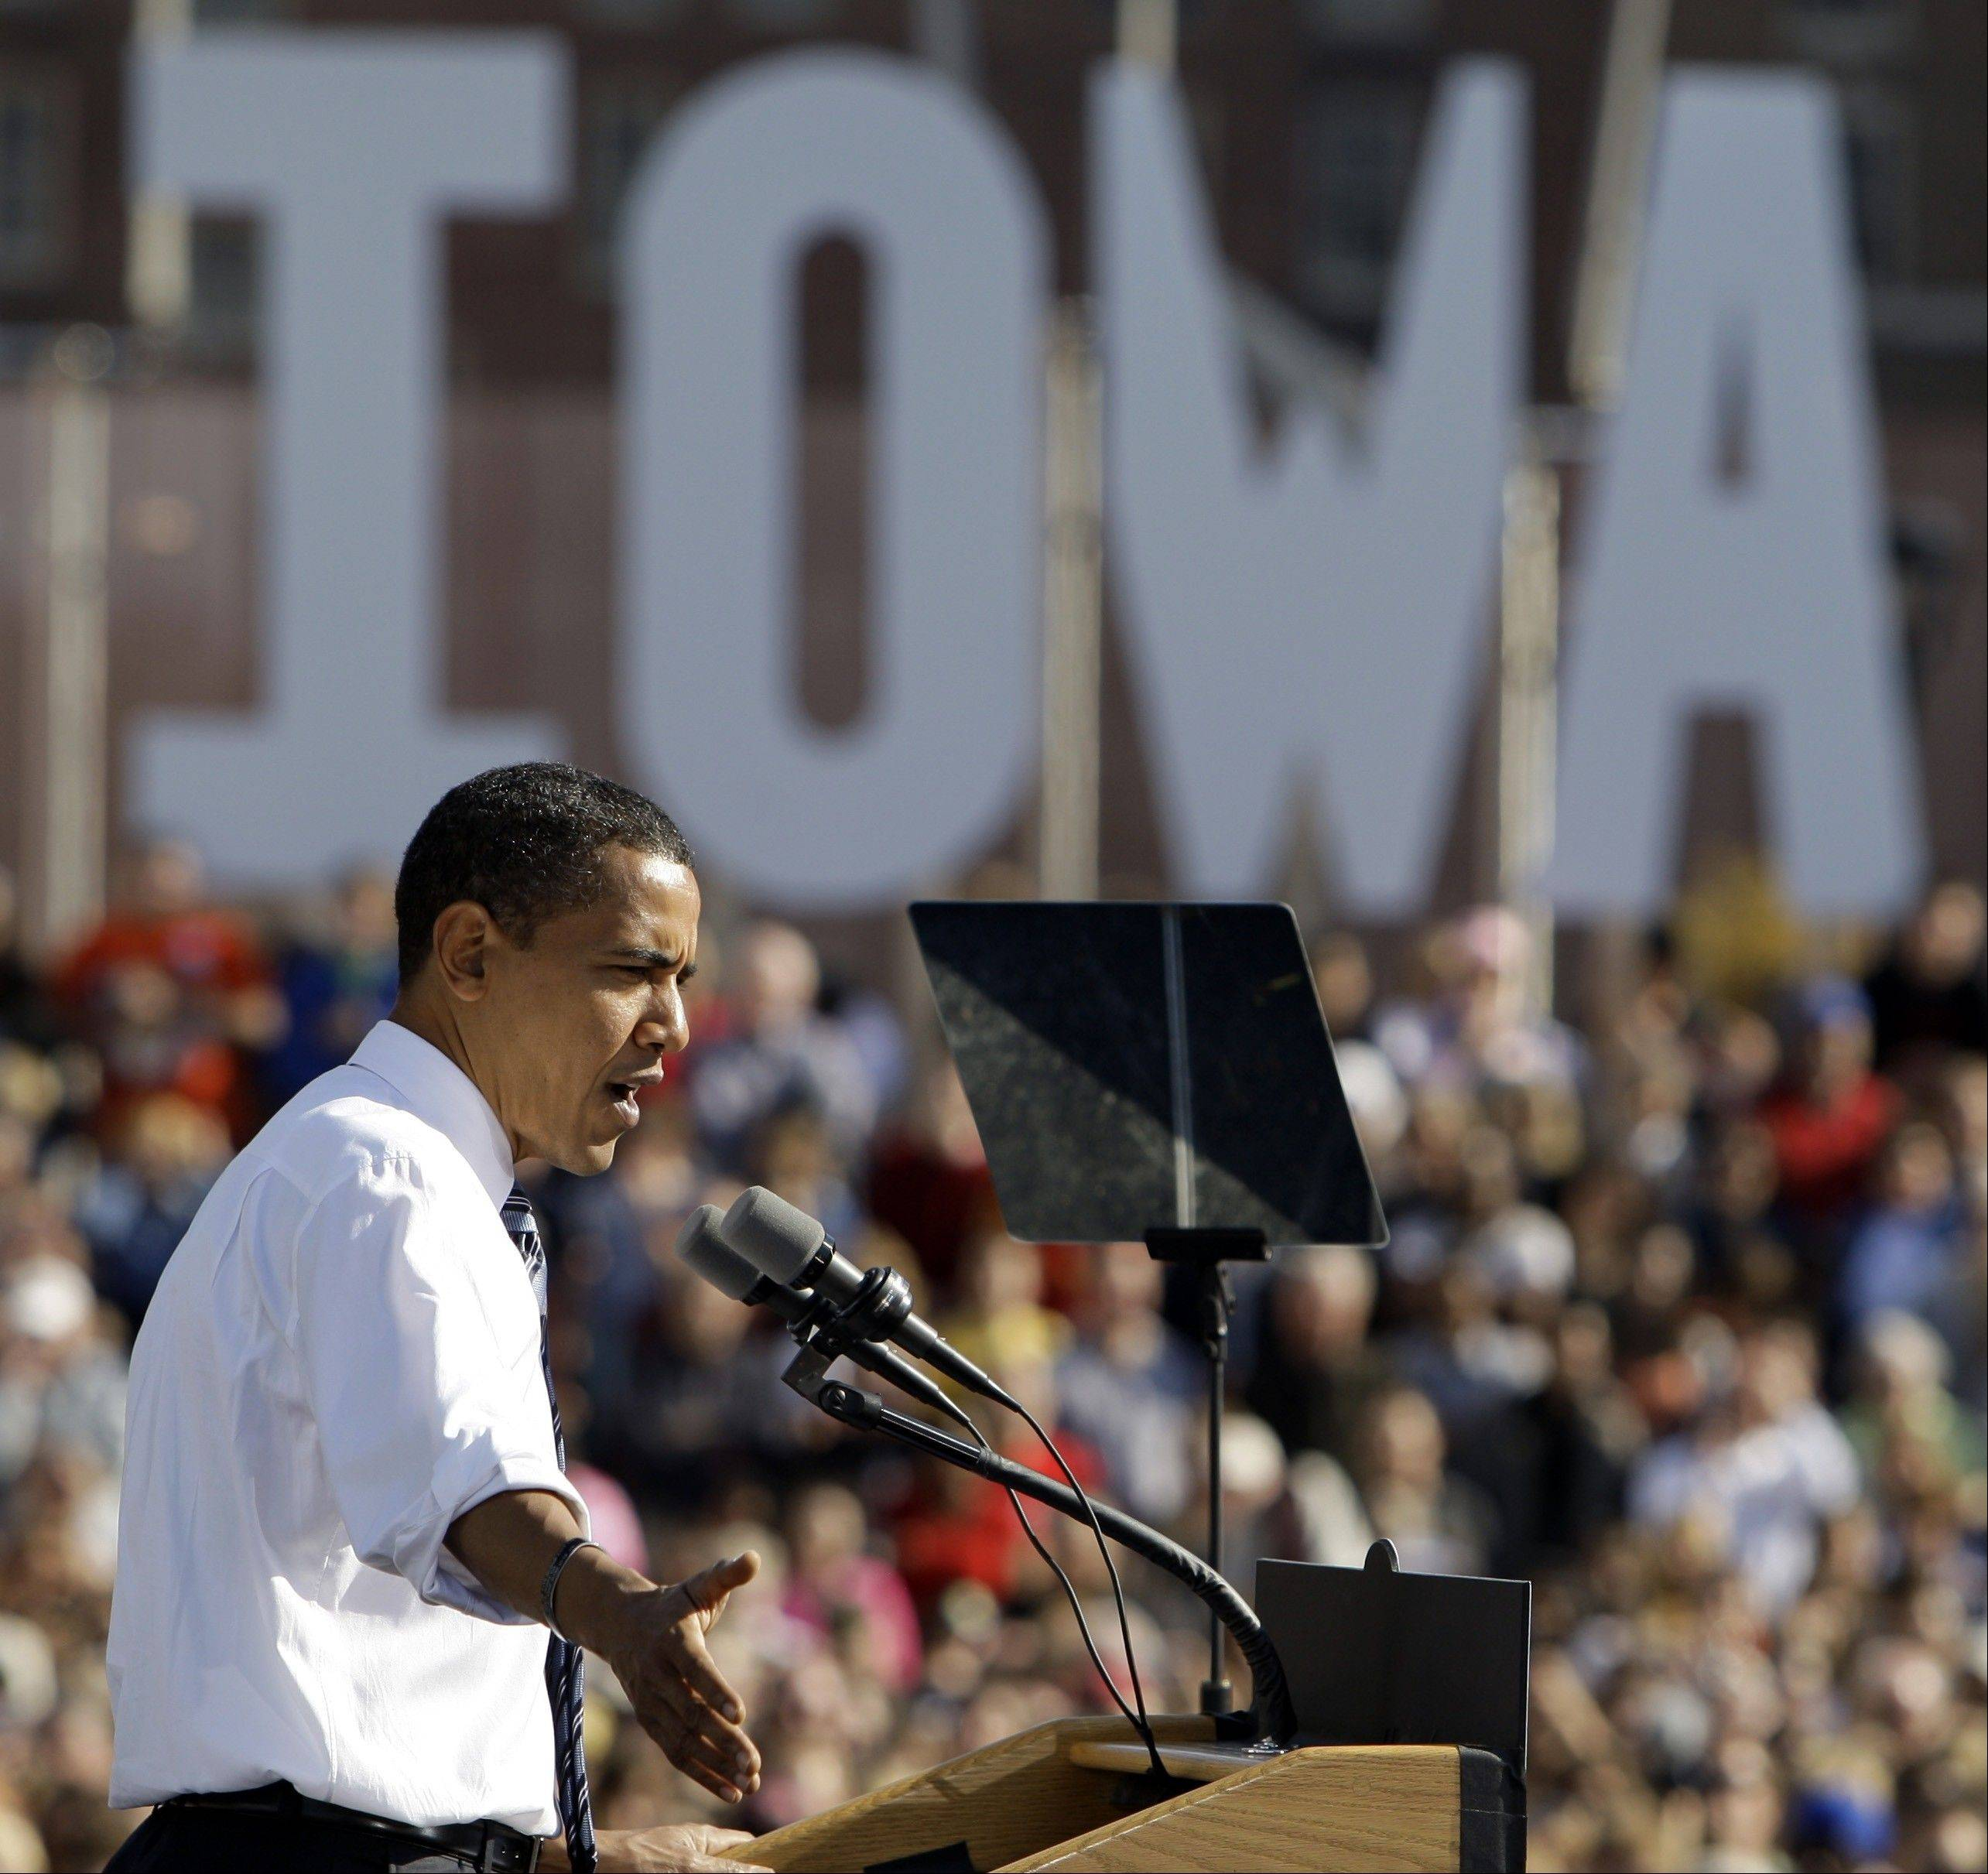 Associated Press/Oct. 21, 2008 Then-Democratic presidential candidate Sen. Barack Obama, an Illinois Democrat, speaks at a rally at Western Gateway Park in Des Moines, Iowa. The president�s re-election campaign is increasingly sounding like a nostalgia tour.